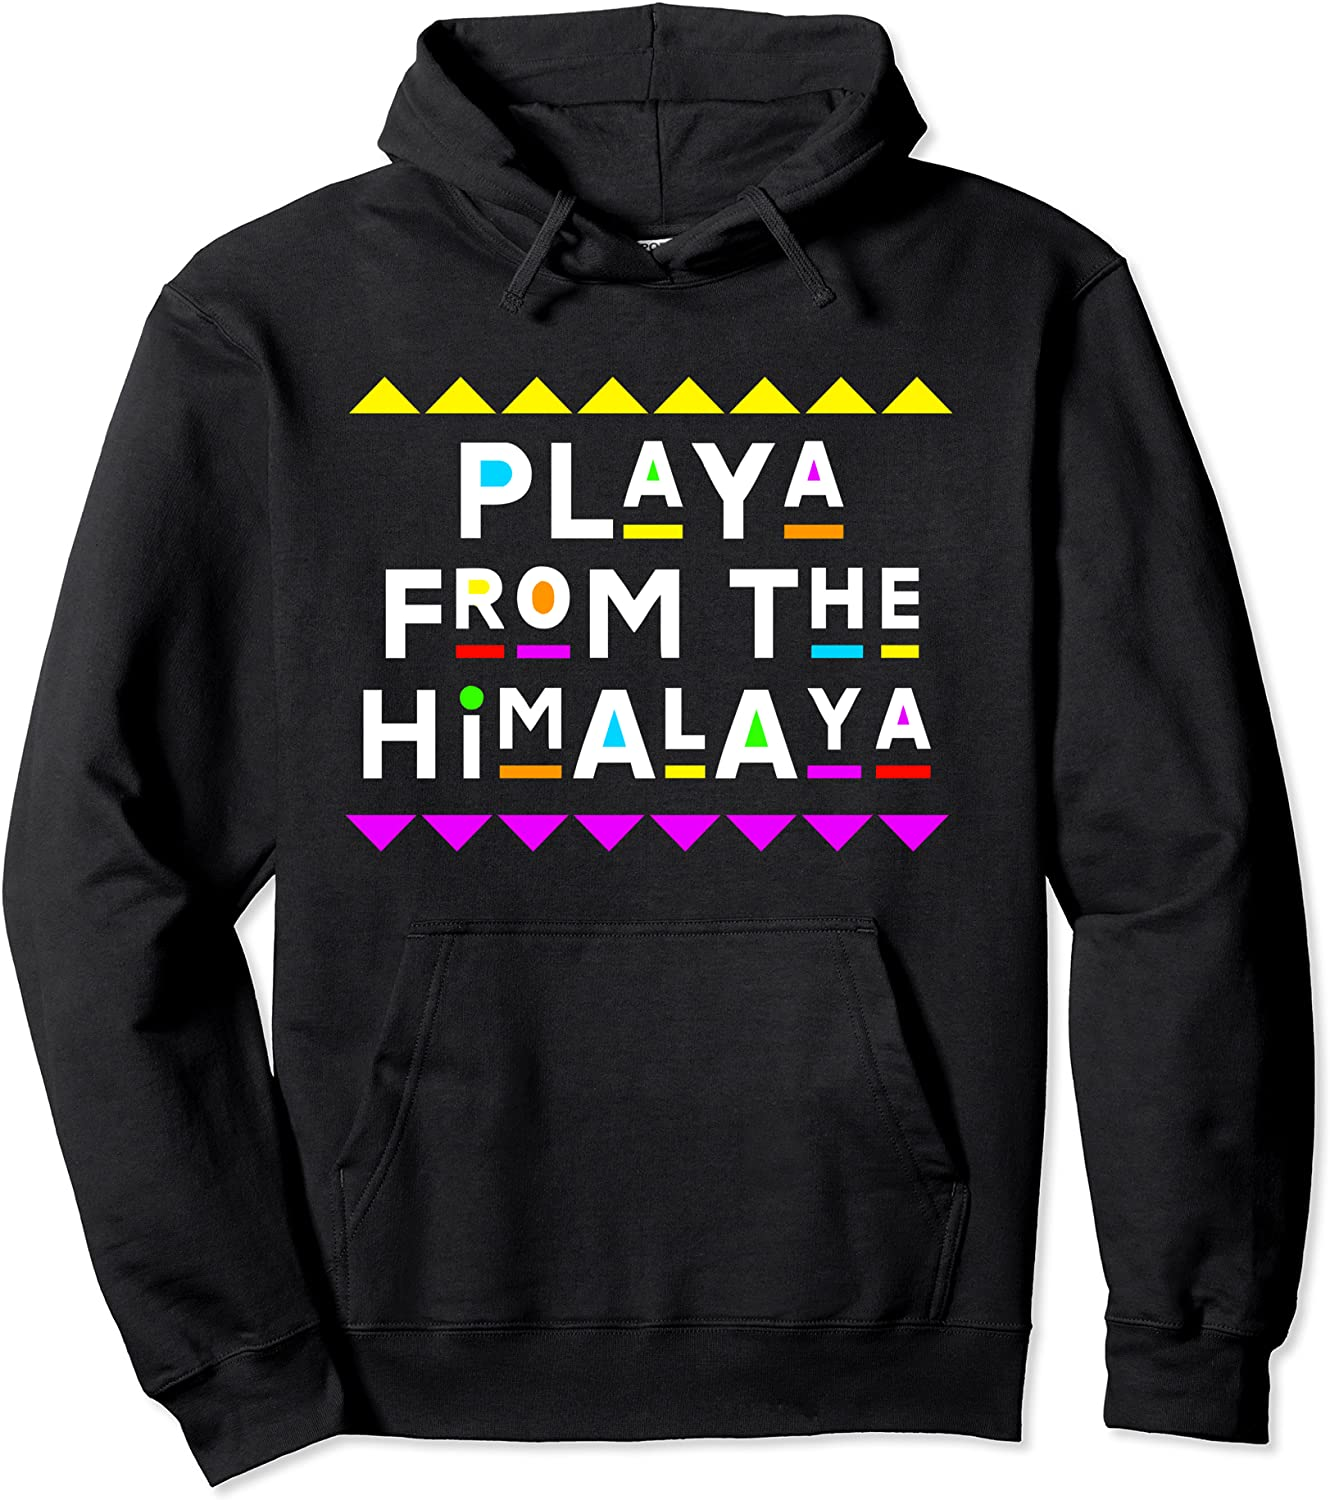 Playa from the Himalaya Style 2021 5% OFF model Hoodie 90s